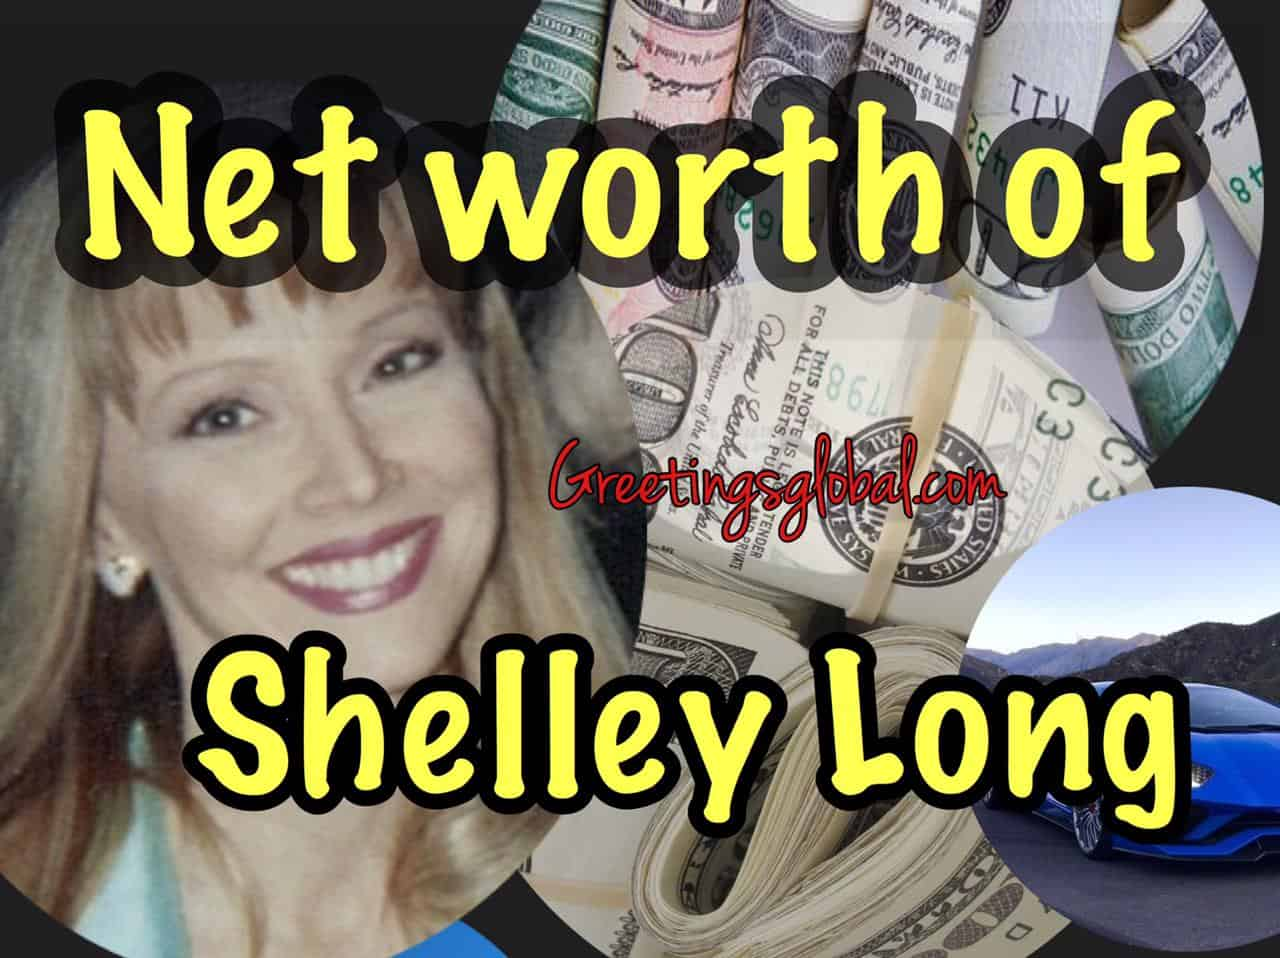 net-worth-of-Shelley-Long-images